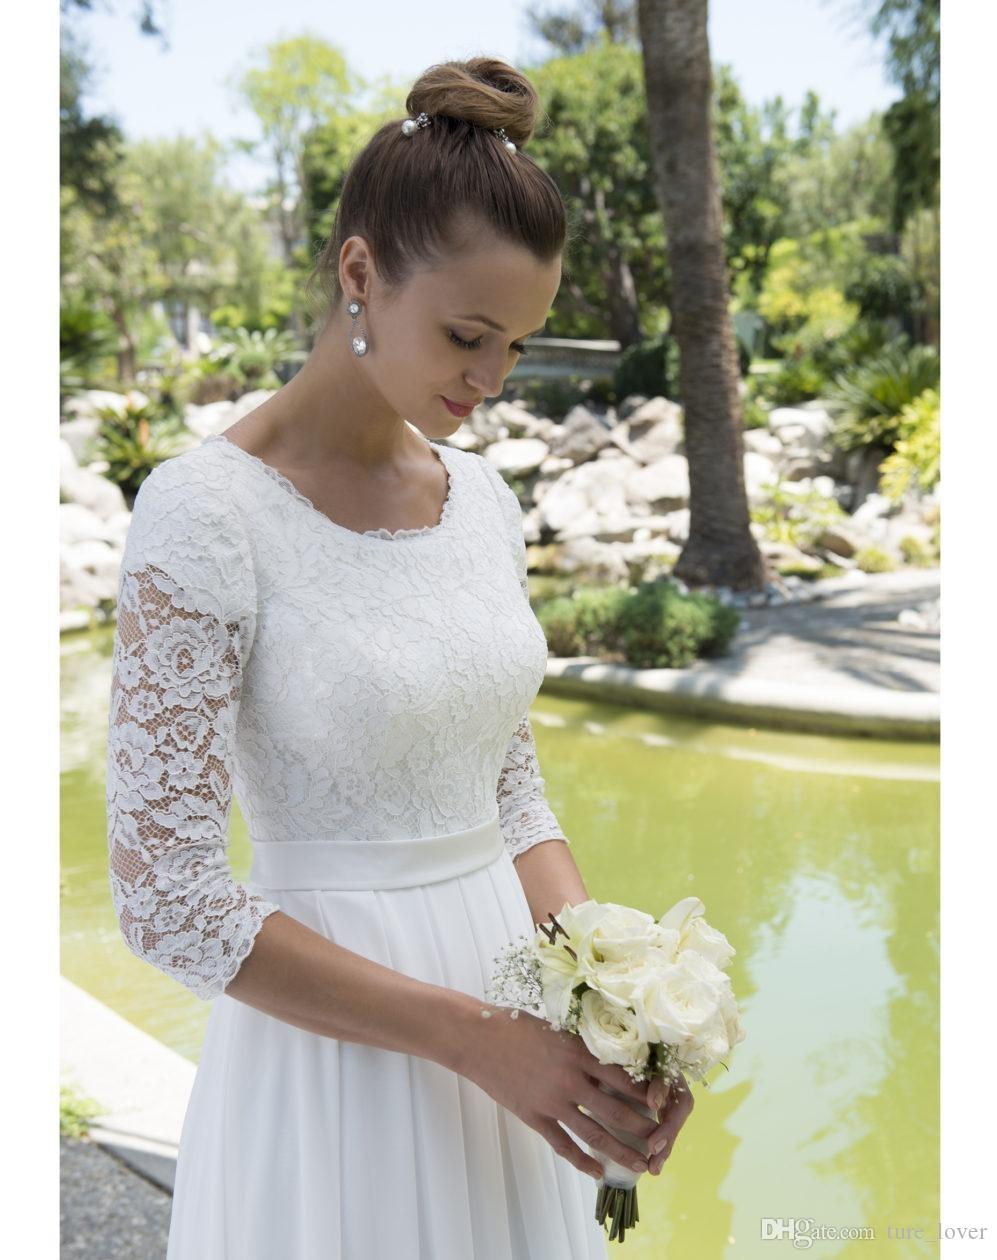 Informal Lace Chiffon Modest Beachboho wedding dresses With 3/4 Sleeves Scoop Neck Reception Bridal Gowns Mature Bride Elegant New